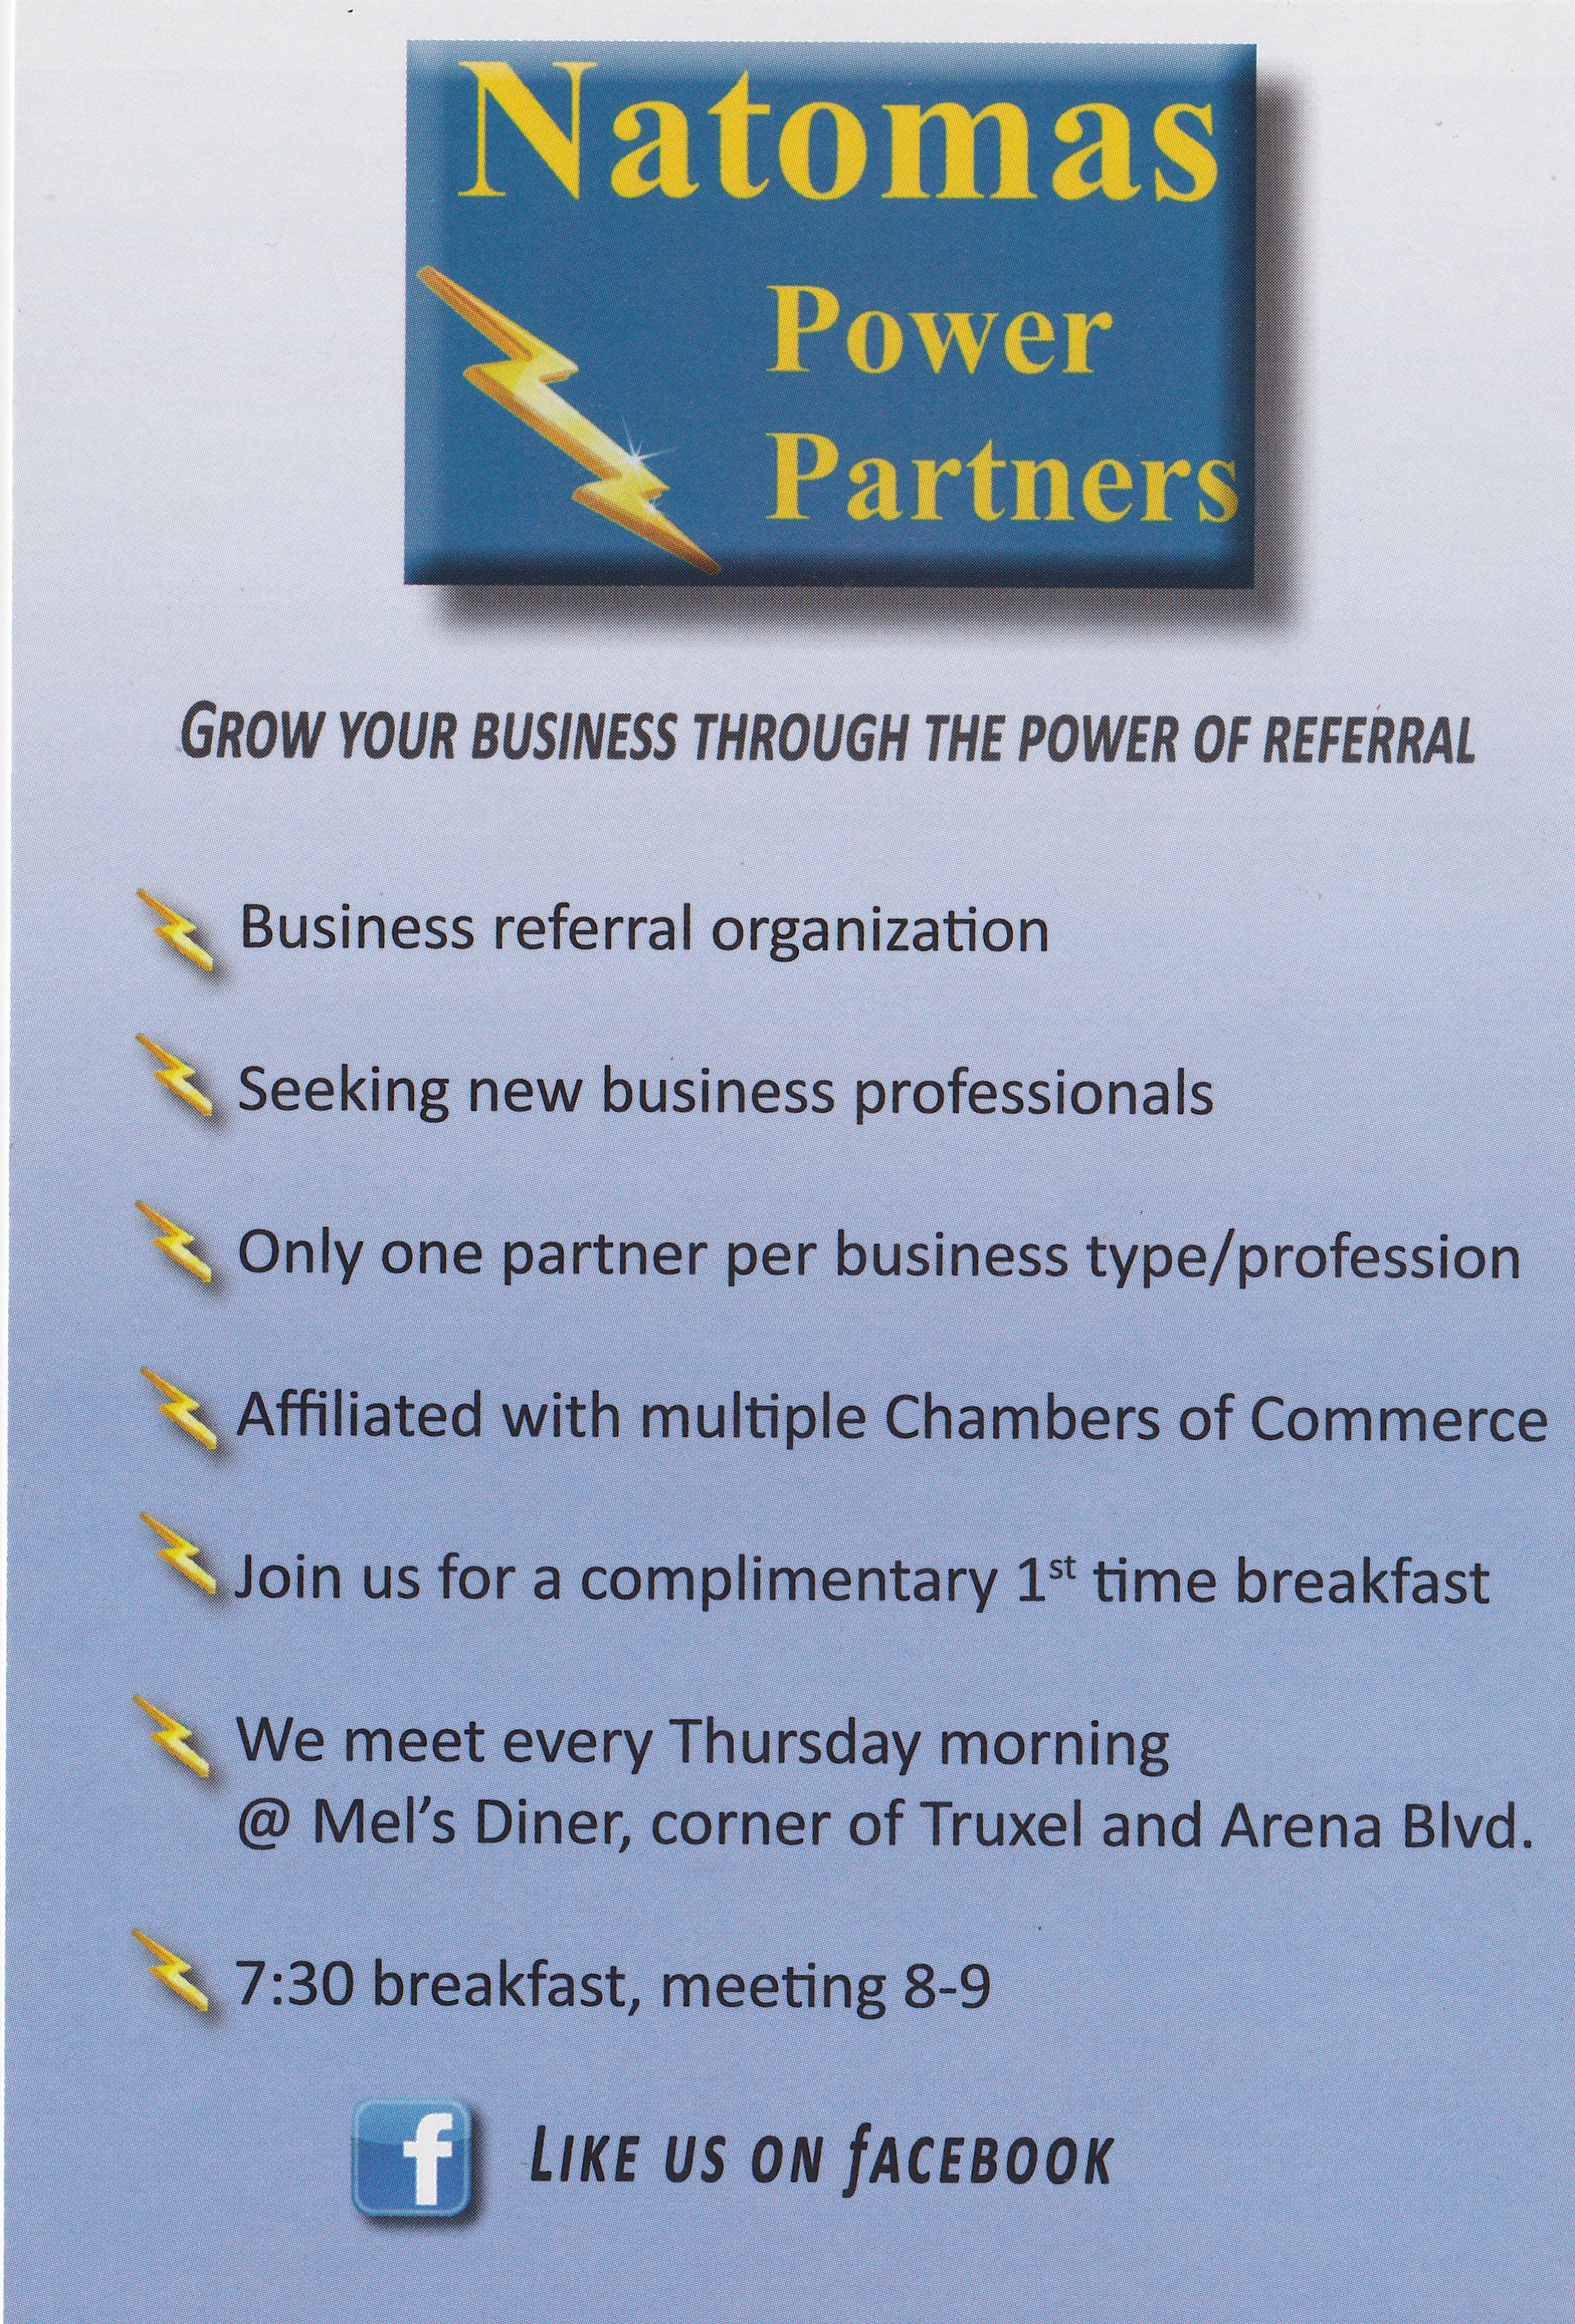 Natomas Power Partners Business Networking Referral Group